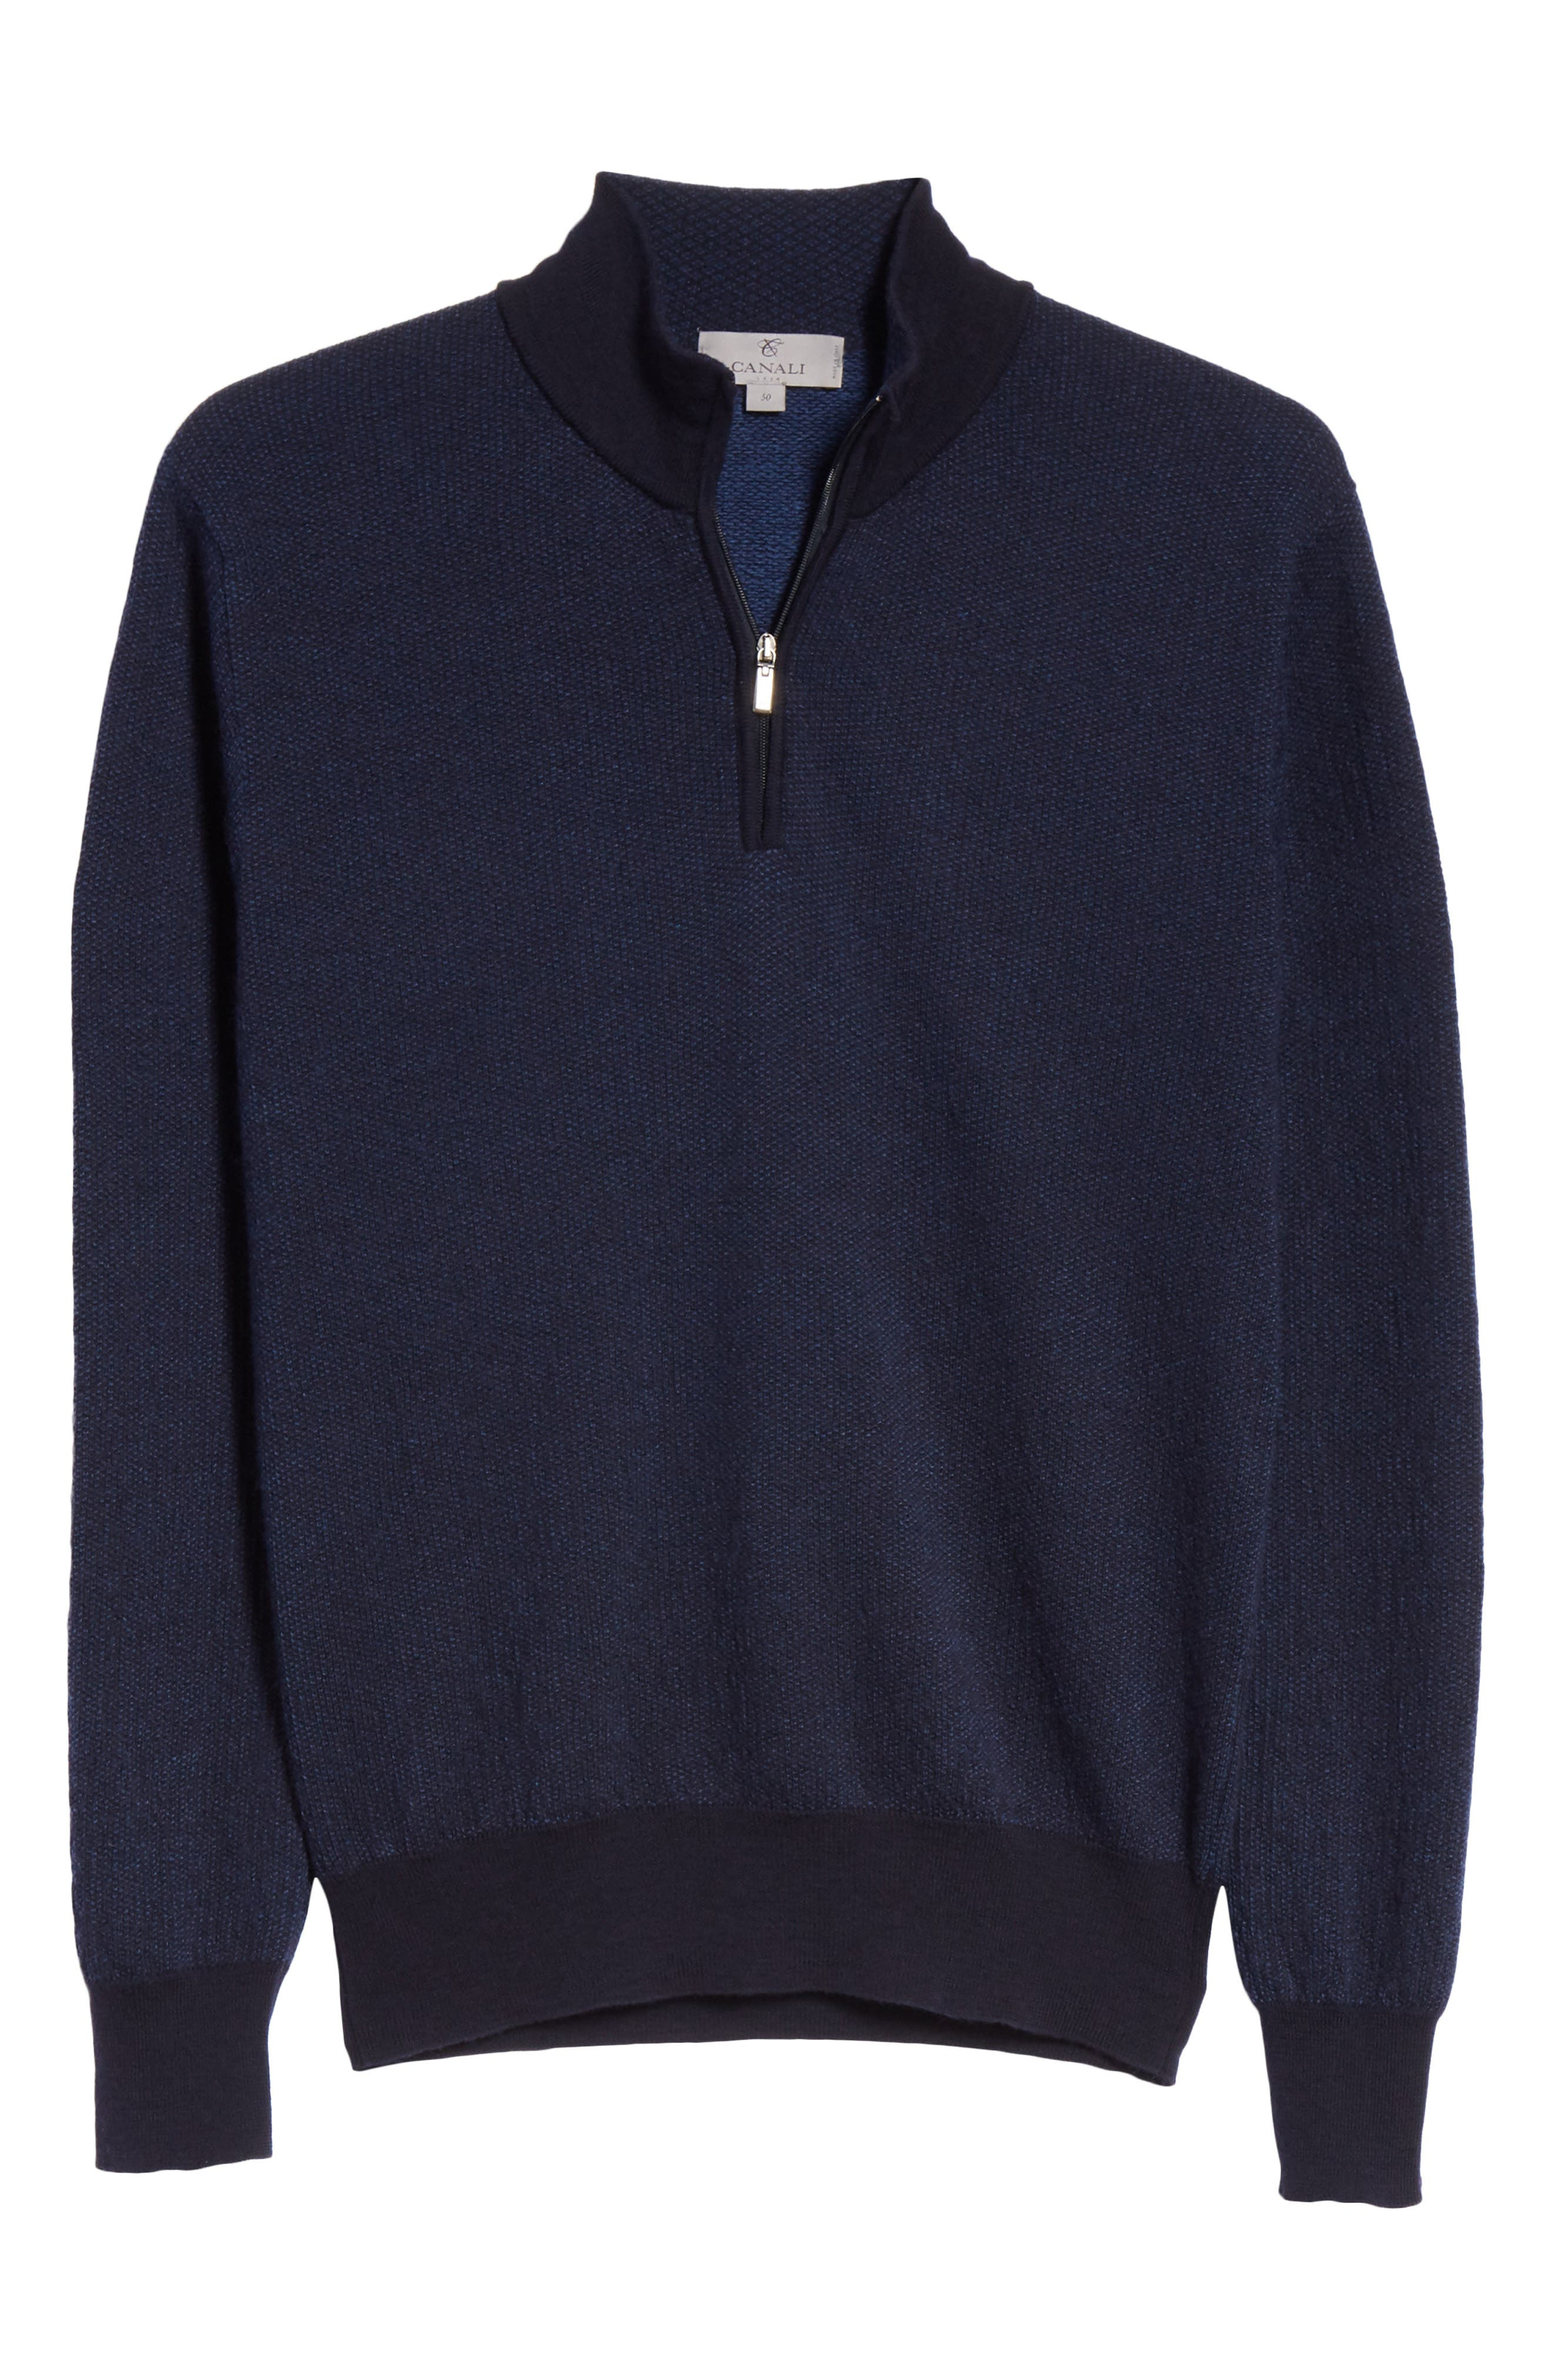 Quarter Zip Wool Sweater,                             Alternate thumbnail 6, color,                             400